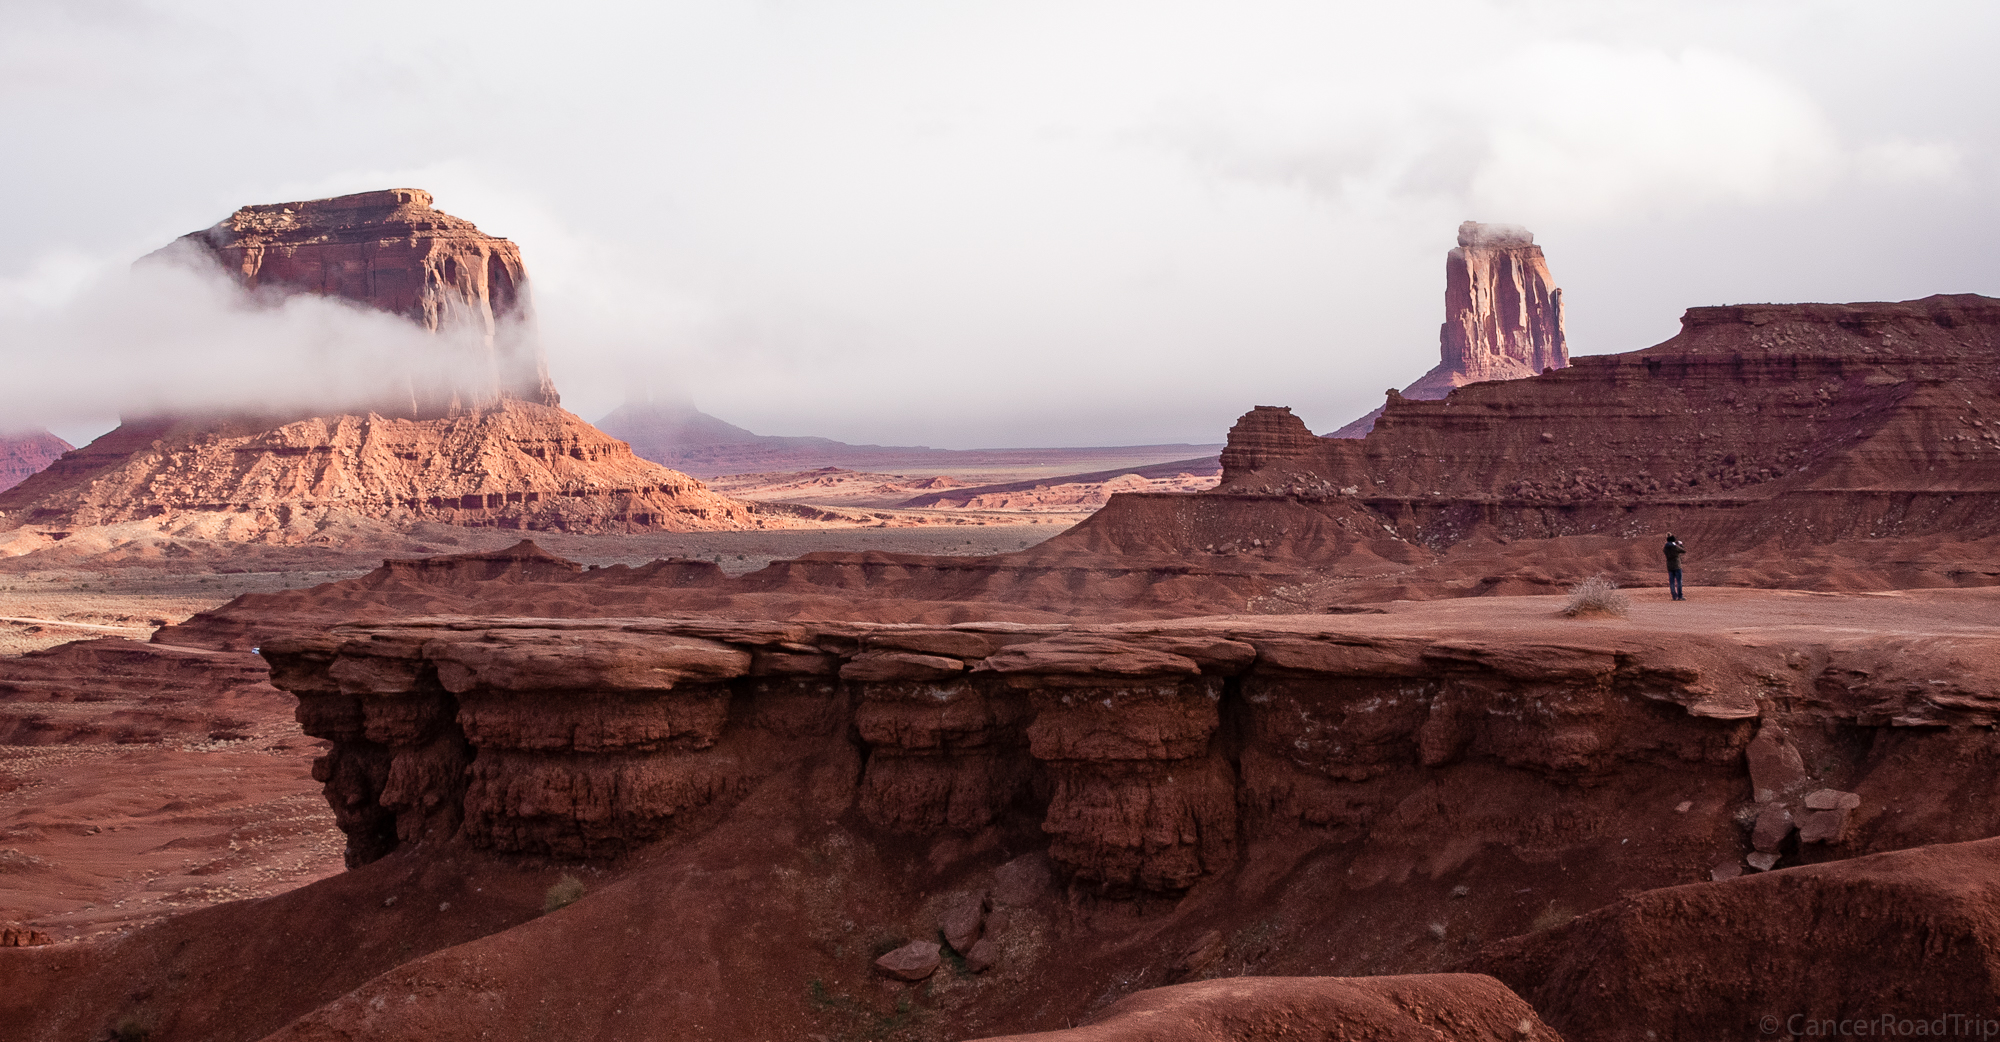 Tse Bii' Ndzisgaii, valley of the rocks, photo tours, Phillips Photo Tours, photographing Monument Valley